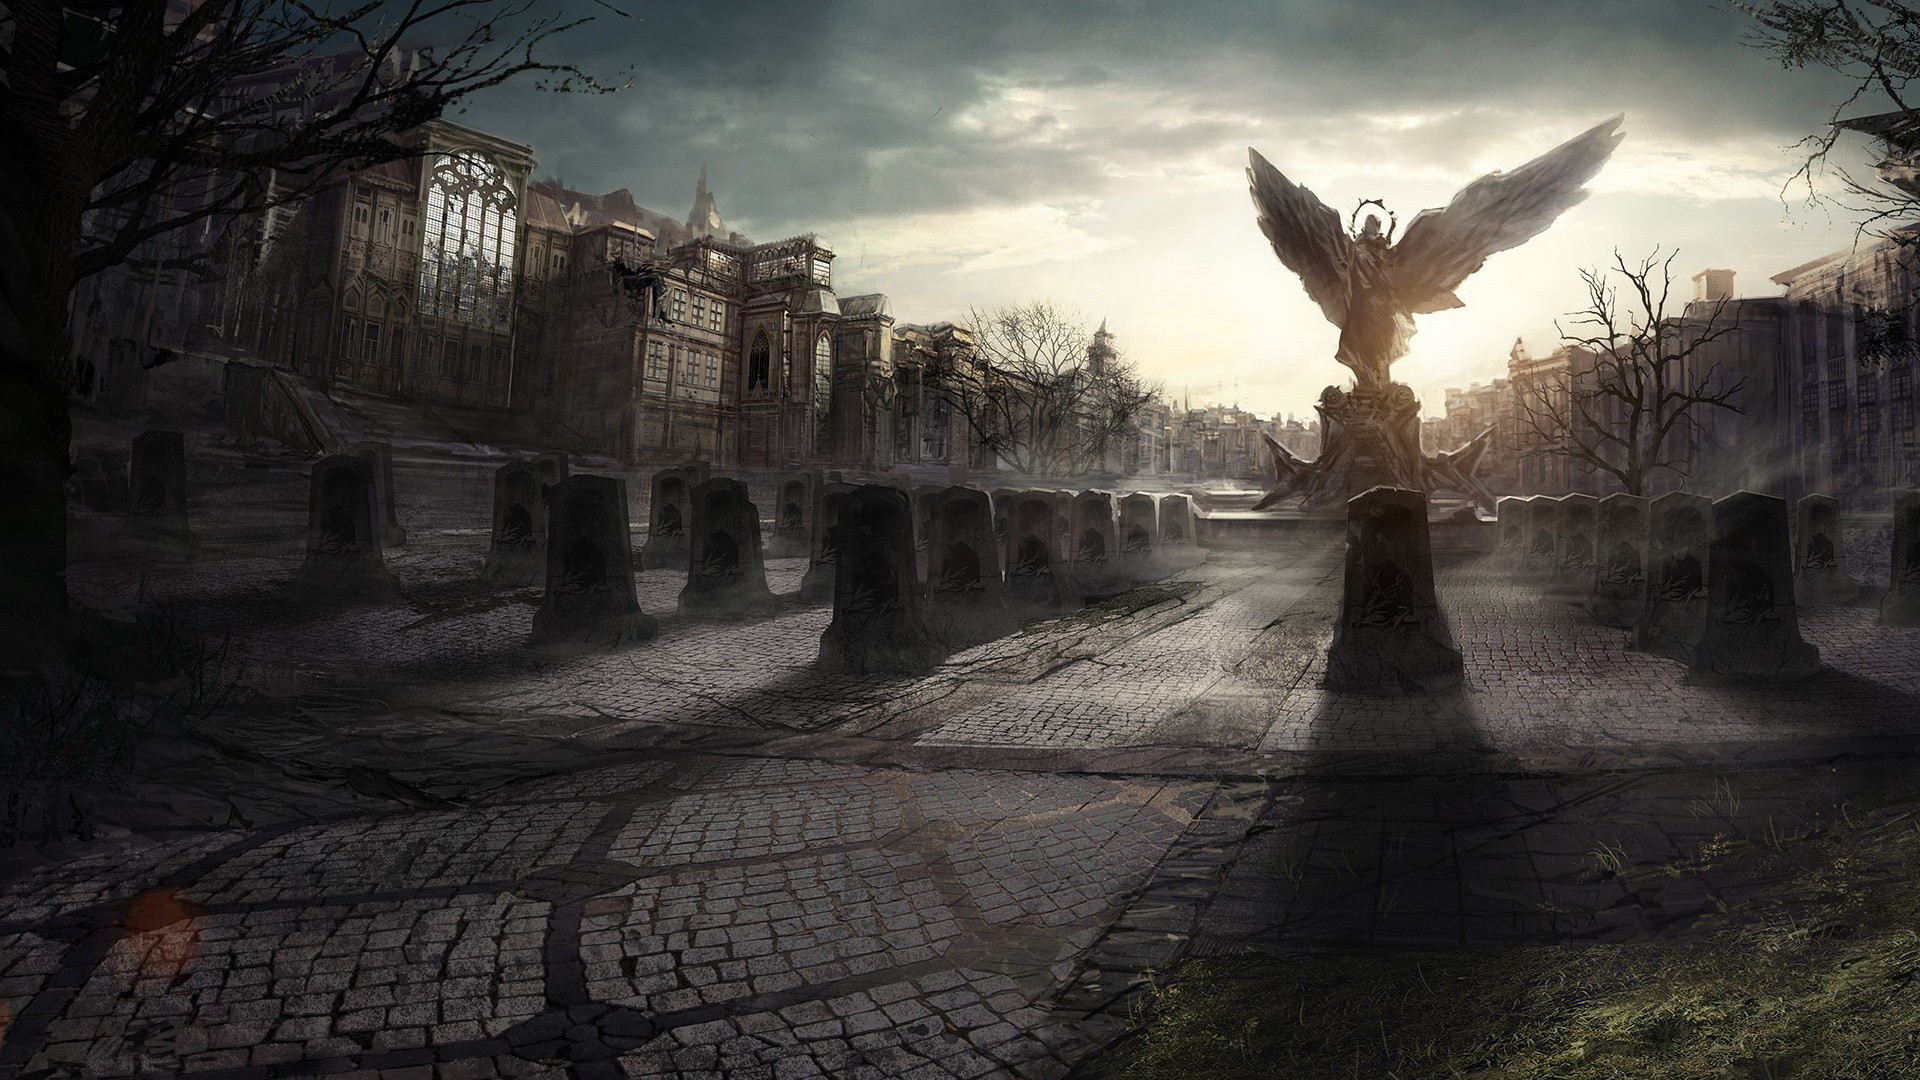 Angel statue in a destroyed city wallpapers and images   wallpapers 1920x1080